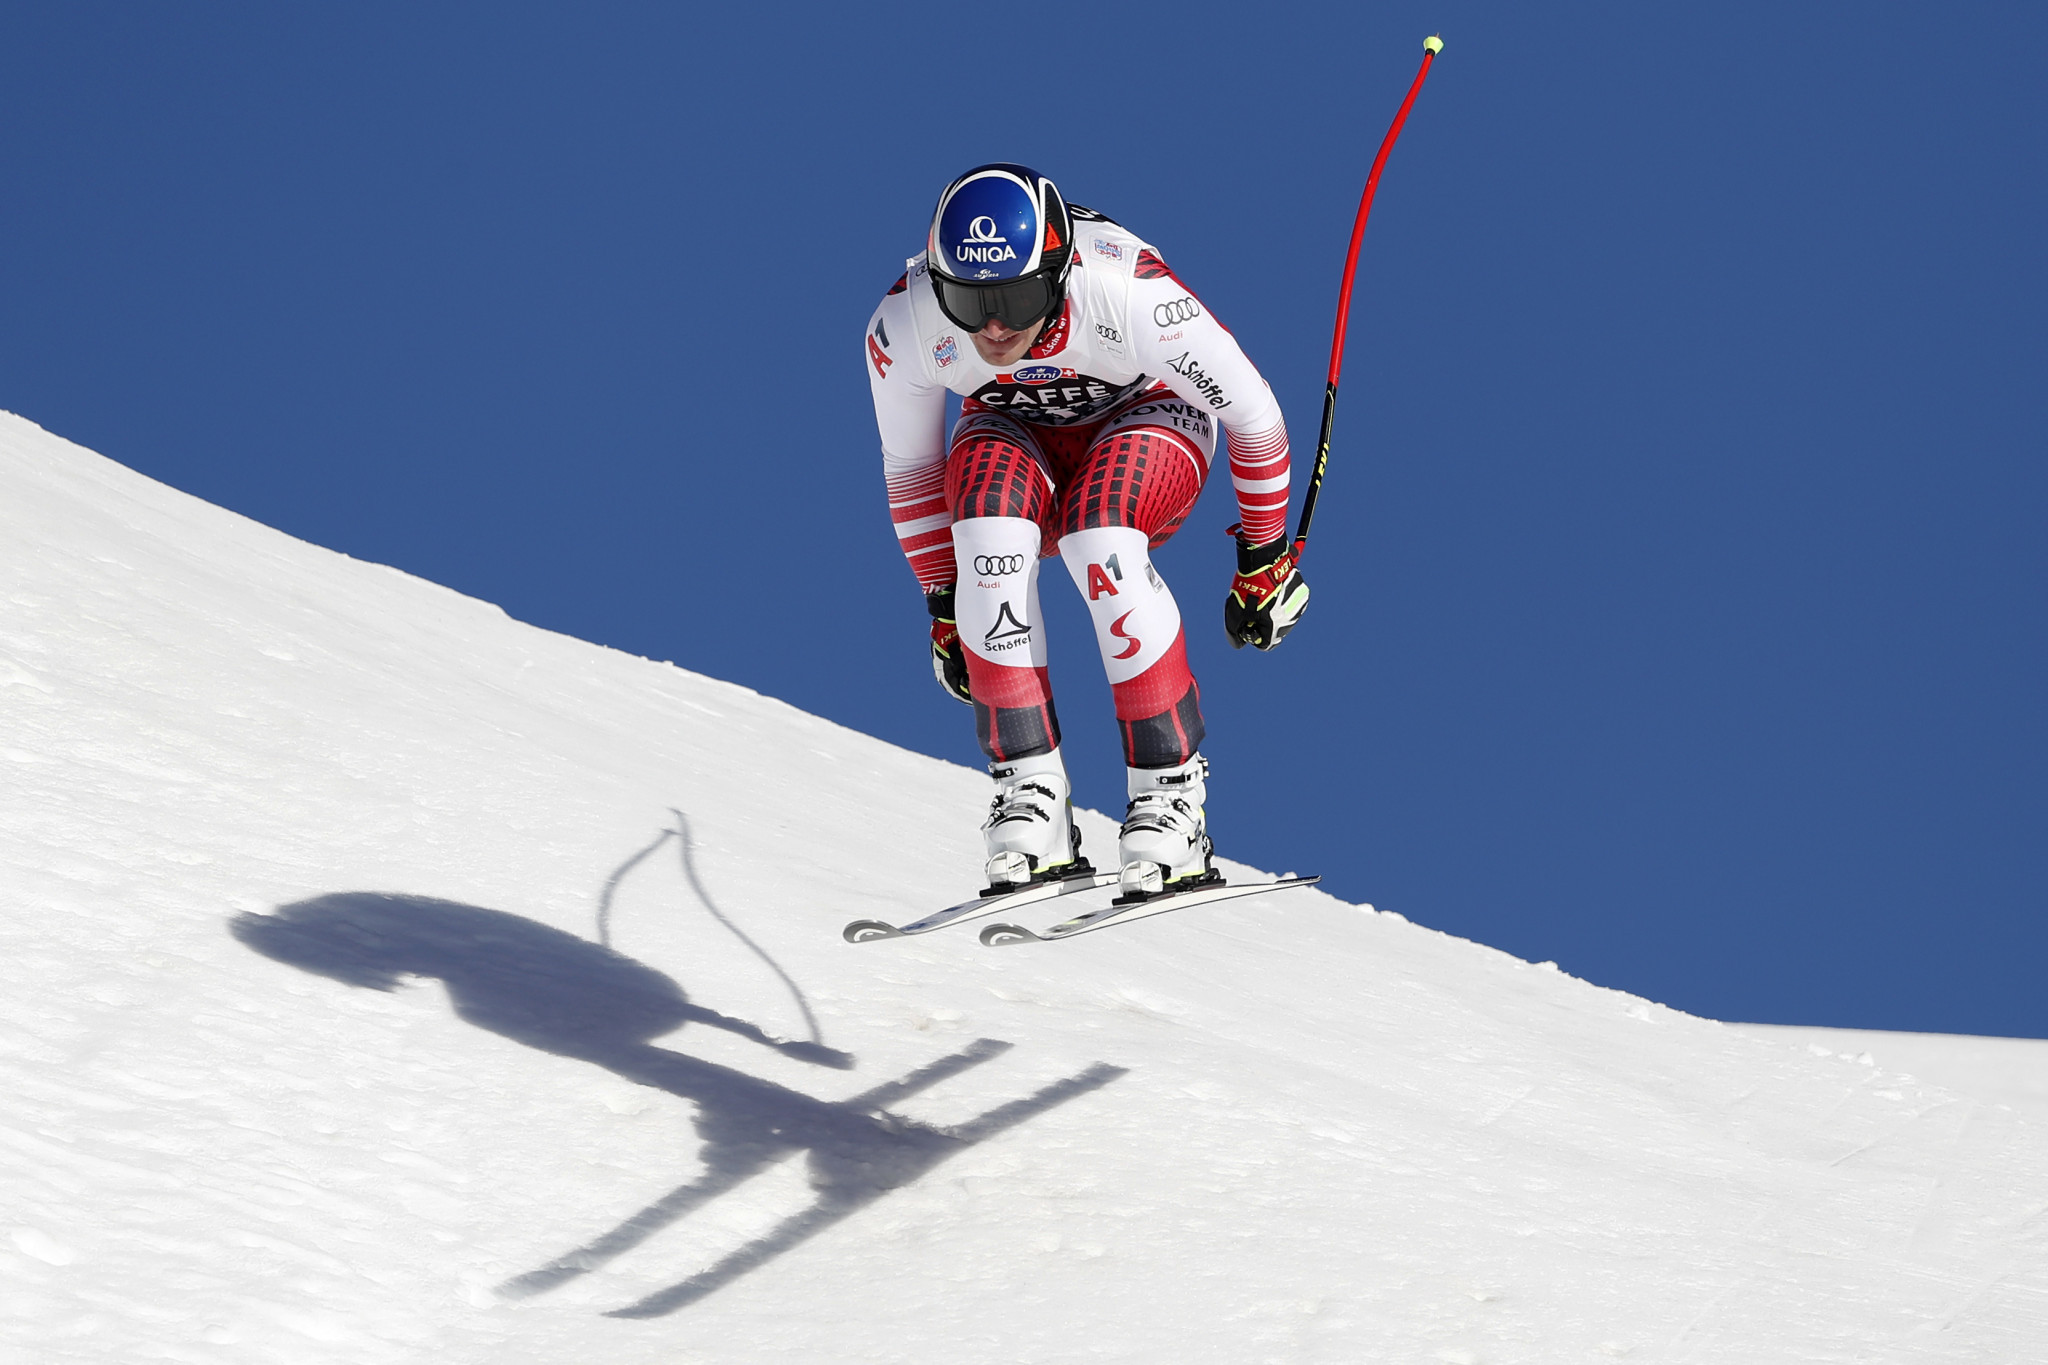 Mayer in-form for FIS Alpine Ski World Cup event in Wengen